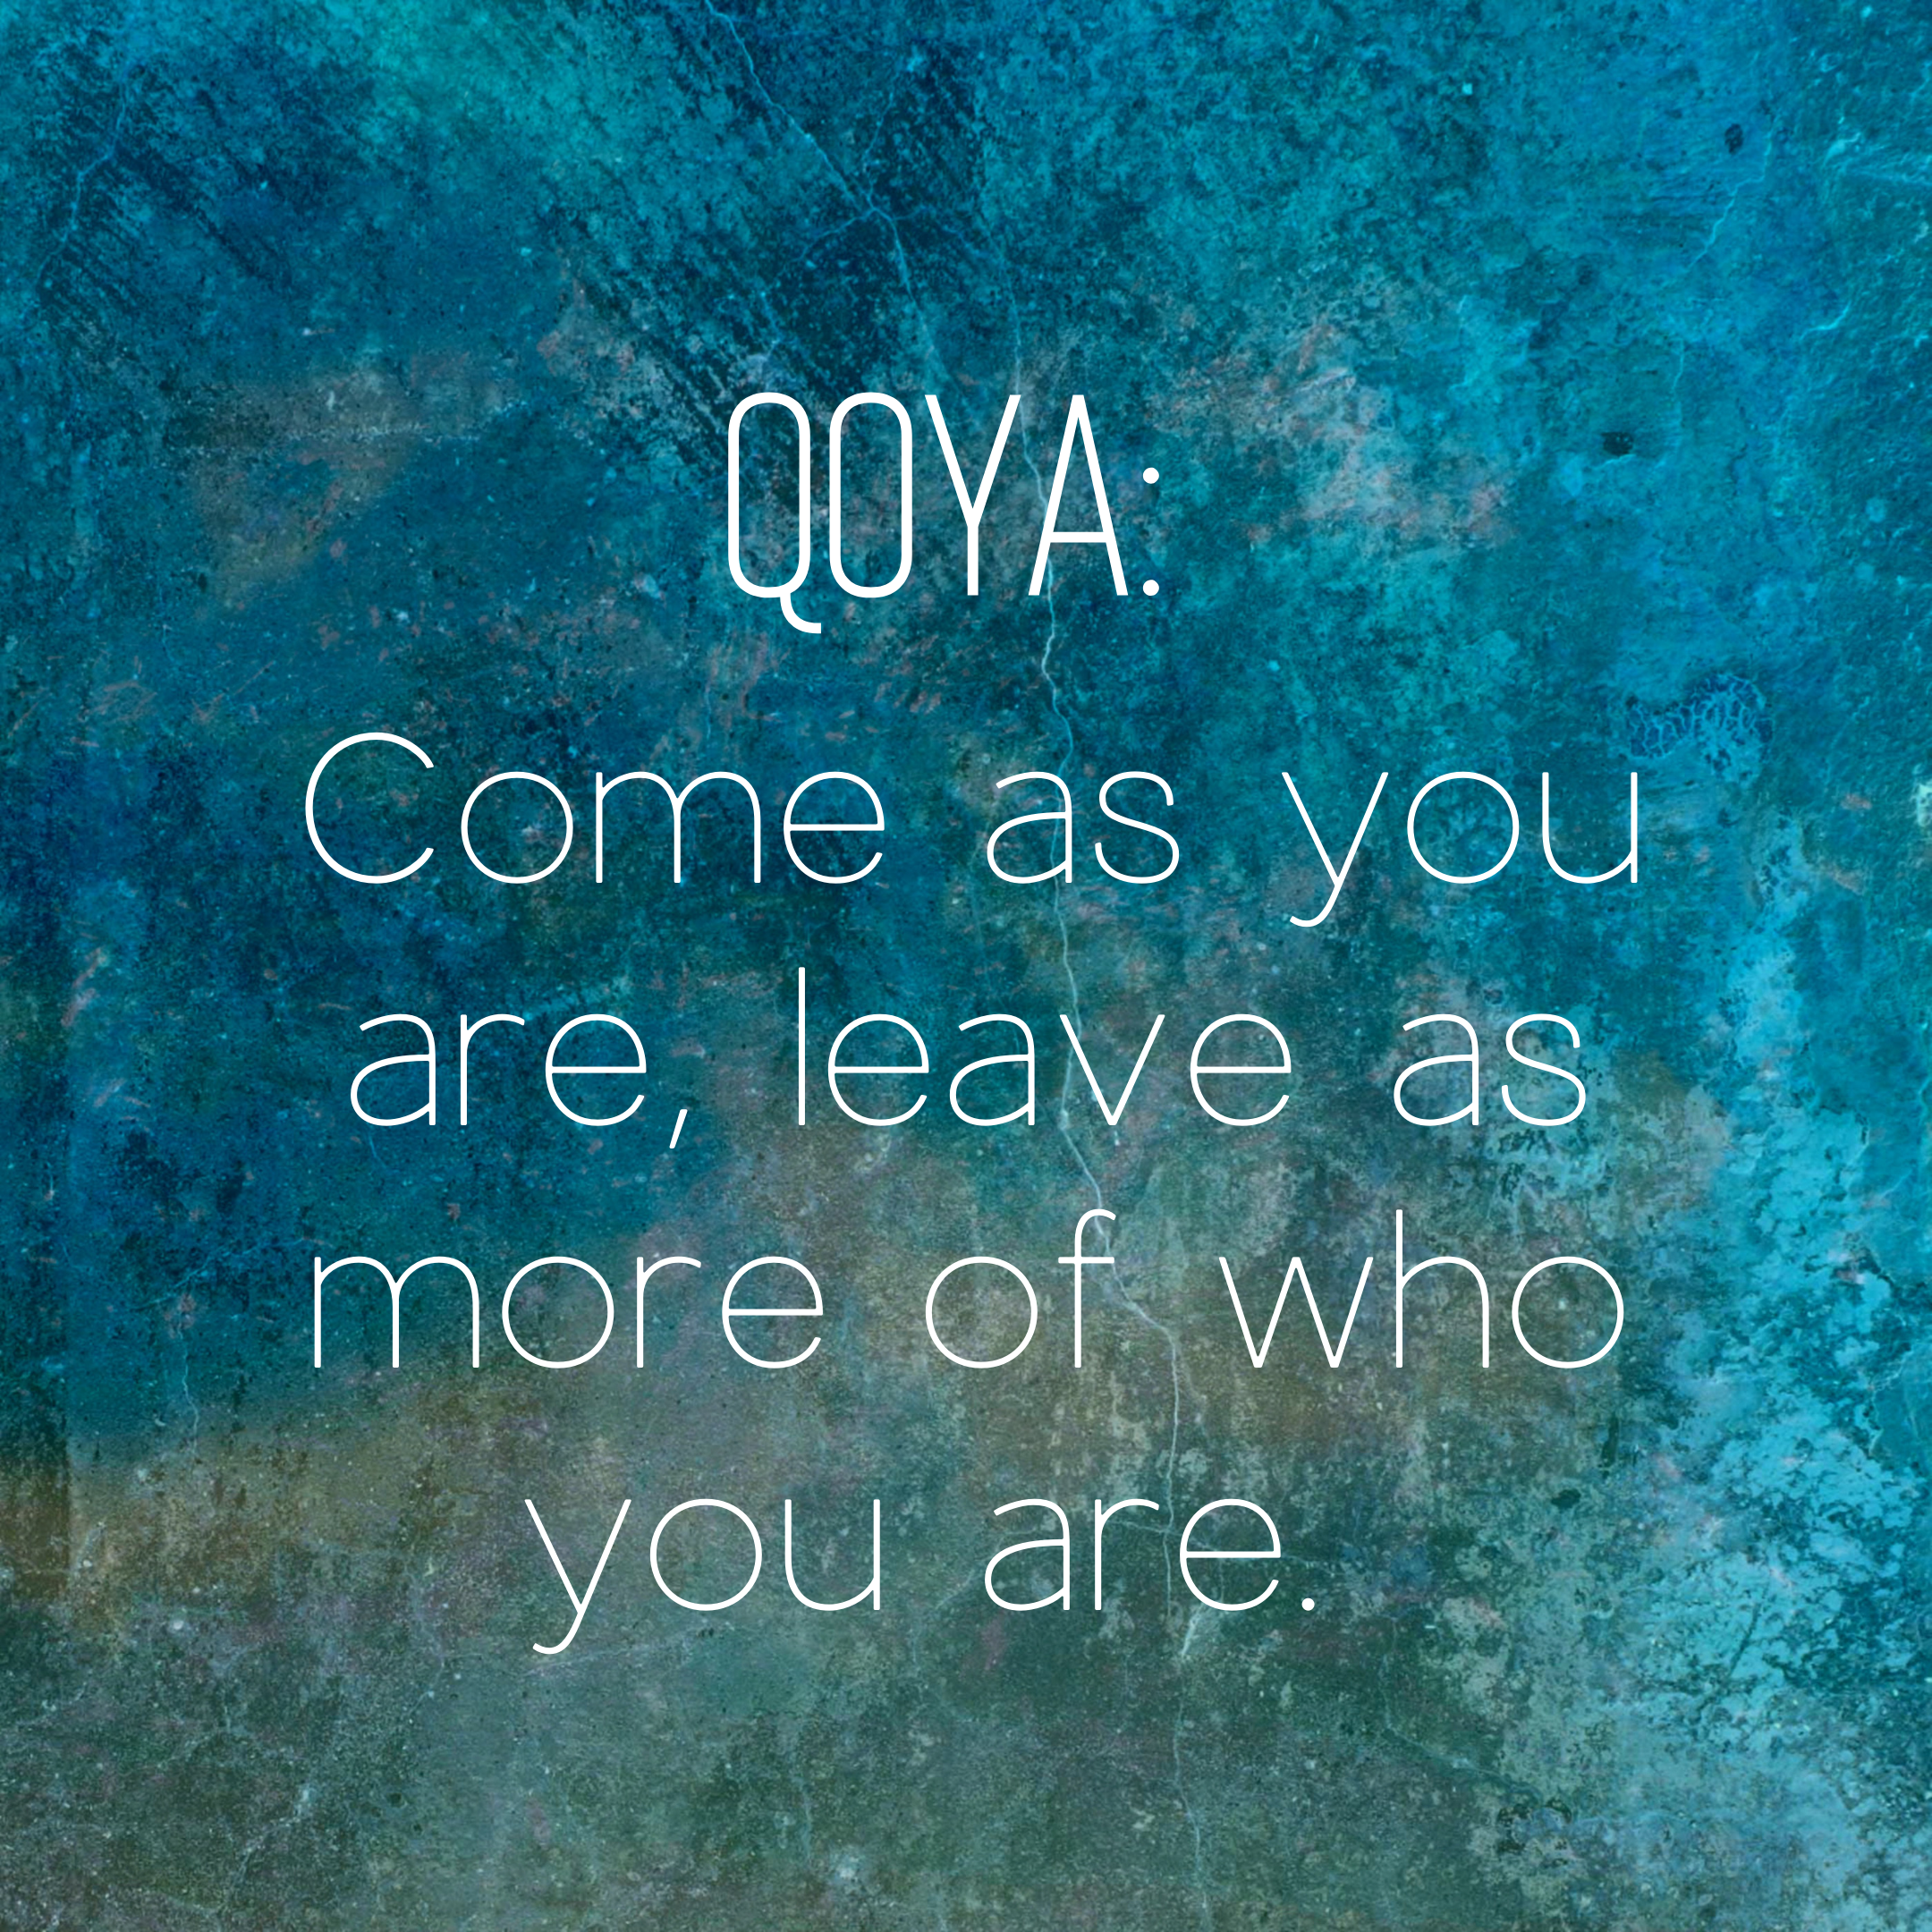 Qoya_ Come as you are, leave as more of who you are.-2.png